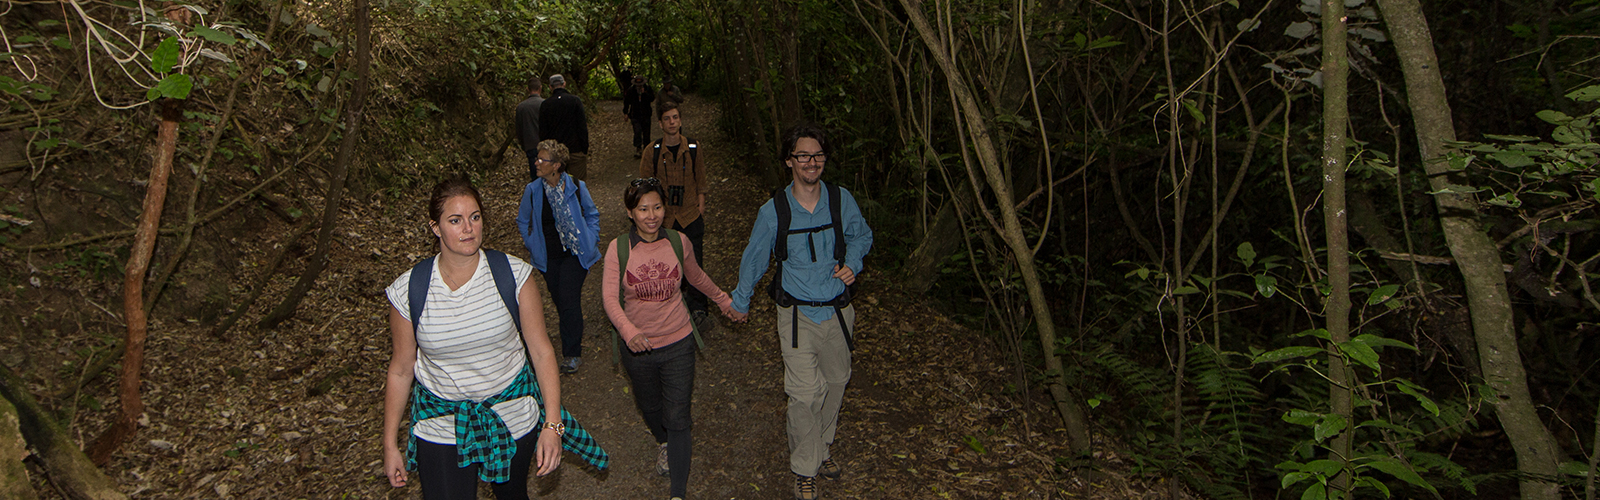 Tour group at ZEALANDIA